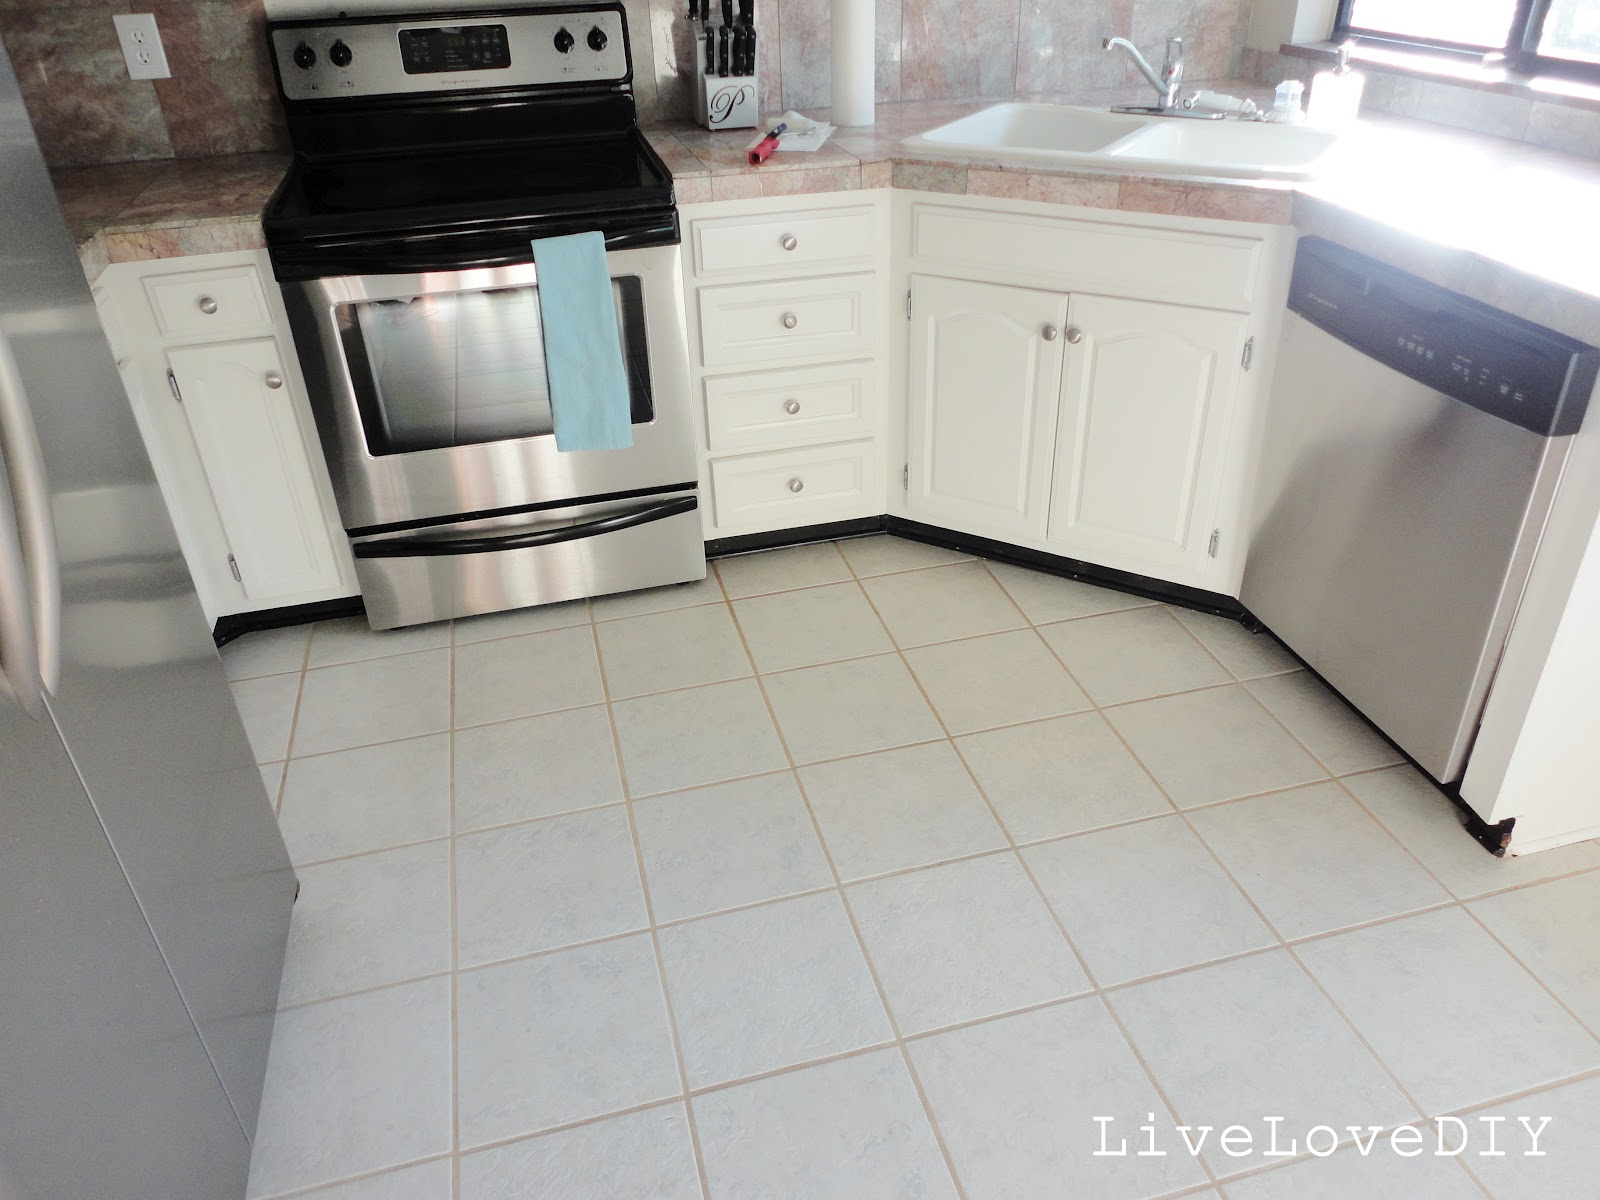 Livelovediy how to restore dirty tile grout how to restore dirty tile grout dailygadgetfo Gallery